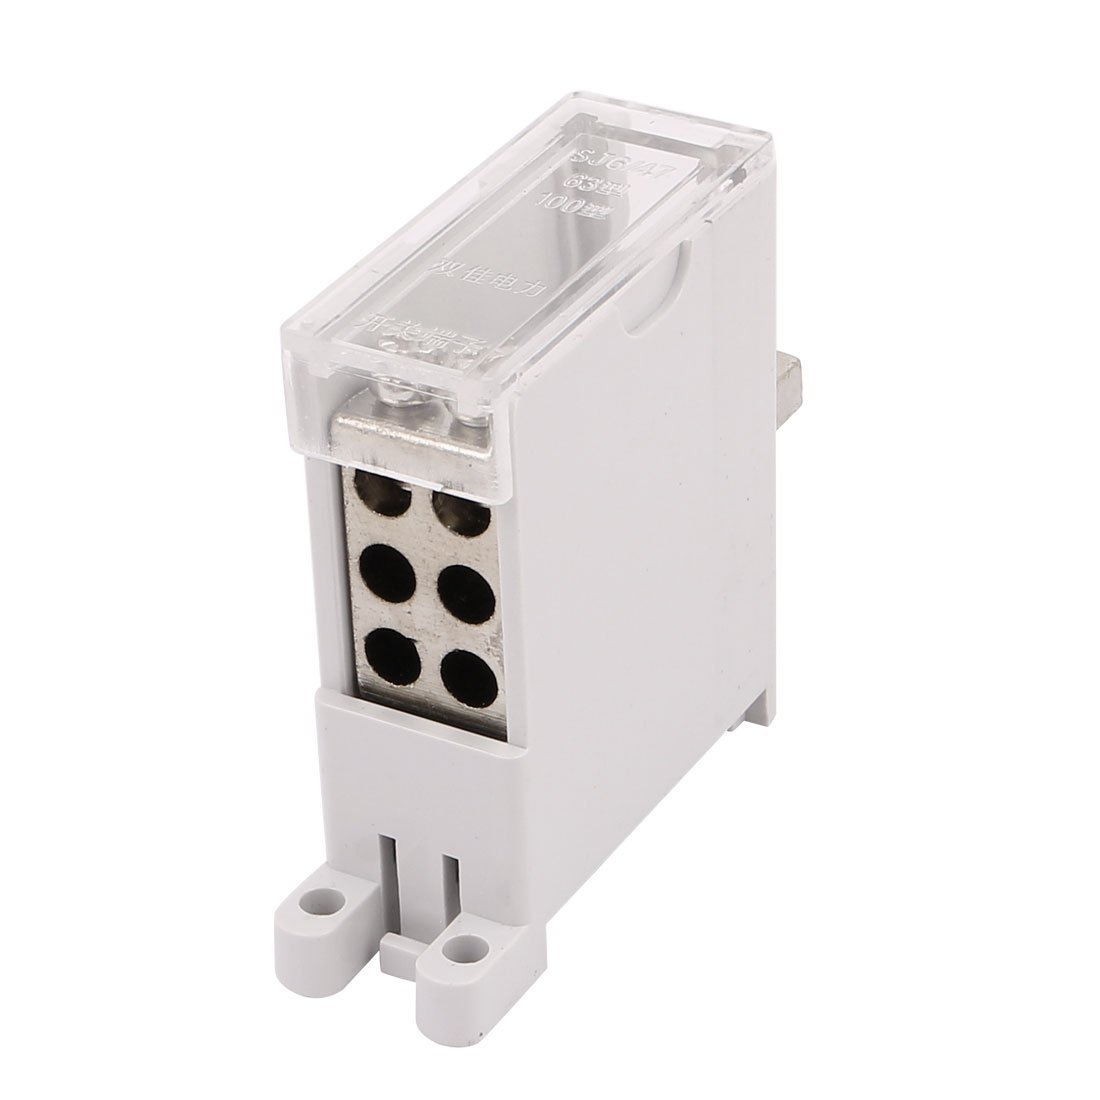 uxcell DZ47 Switch Terminal Wire Barrier Block 1 Inlet 6 Outlet for Miniature Circuit Breakers